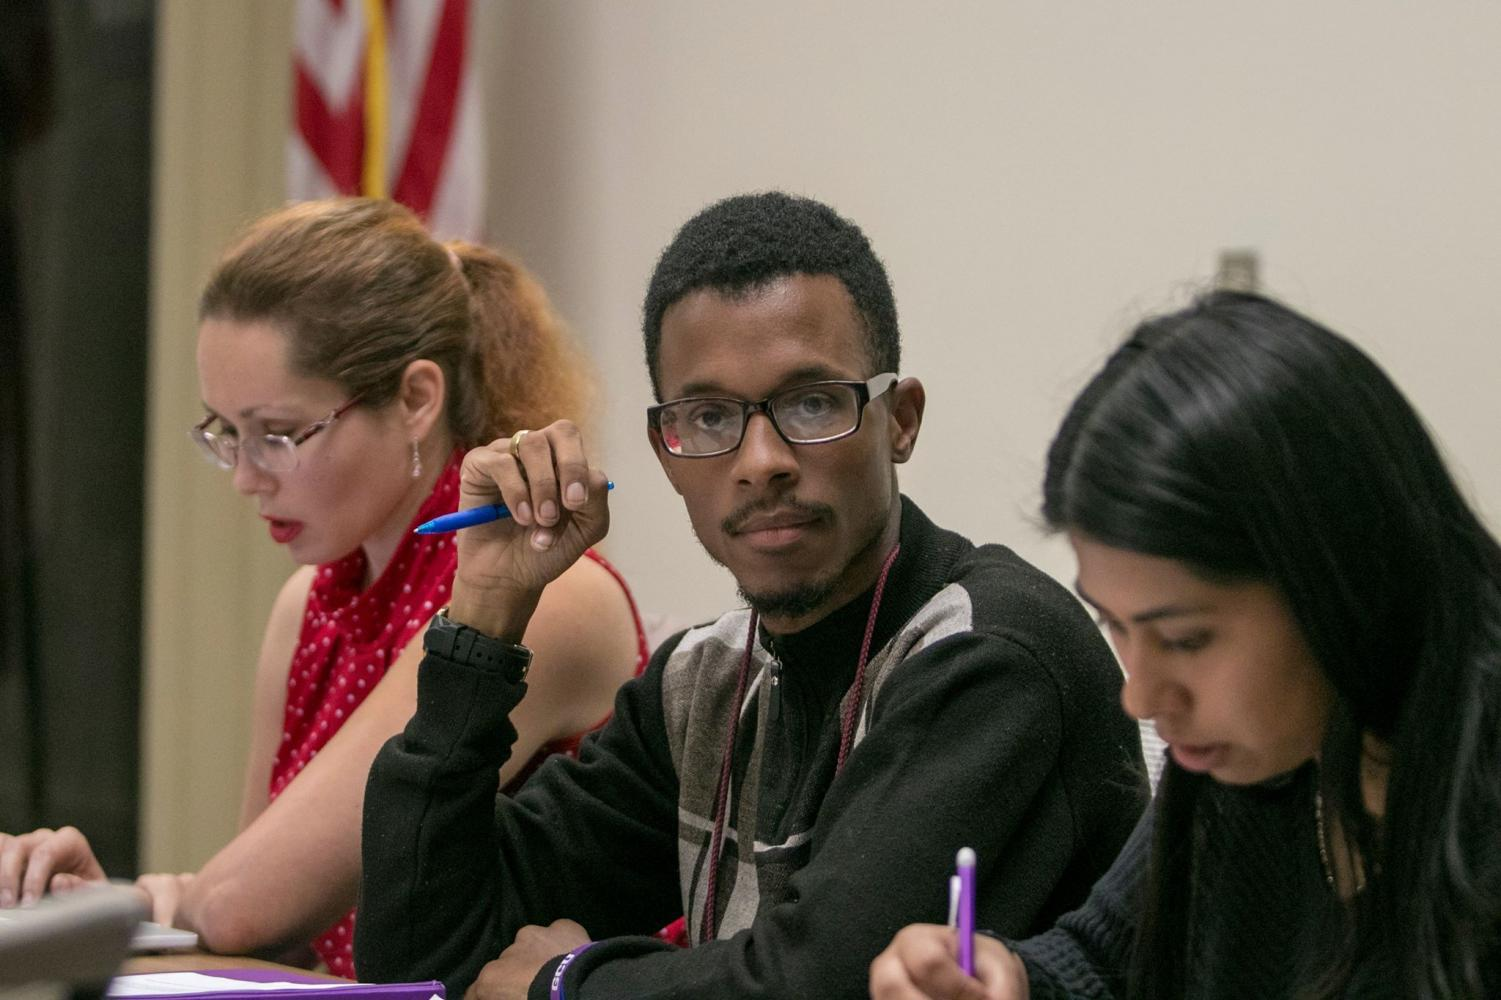 Student government president Christopher Washington leads the Associated Student Government meeting on Tuesday, Oct. 2, 2018.